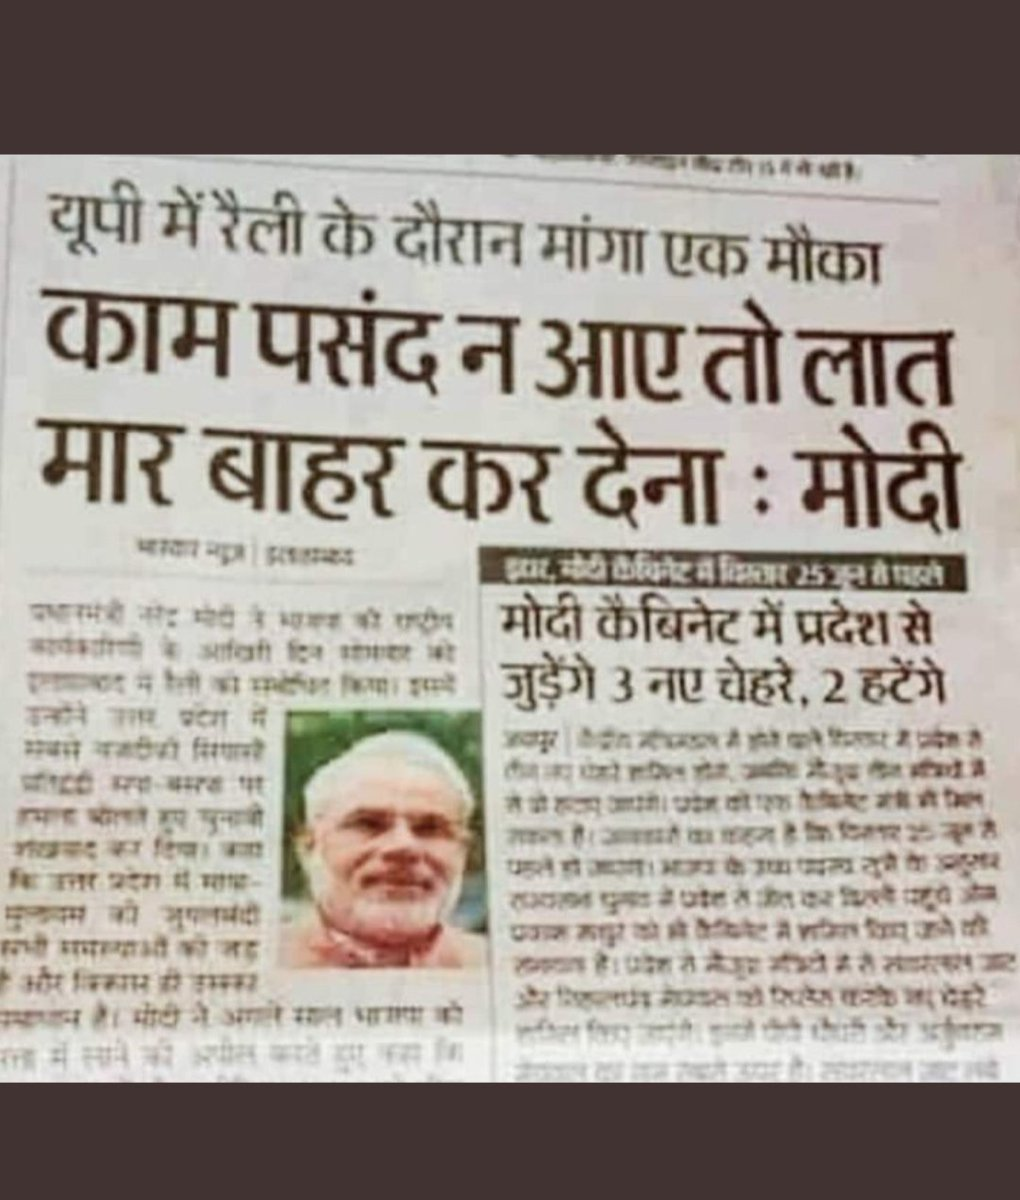 क्या लात मारने की बारी आ गयी #NationalUnemploymentDay #NationalUnemploymentDay #राष्ट्रीय_बेरोजगारी_दिवस The man who promised 2 Crore jobs per year, little did we know that he was talking about taking away those jobs! @PMOIndia @narendramodi